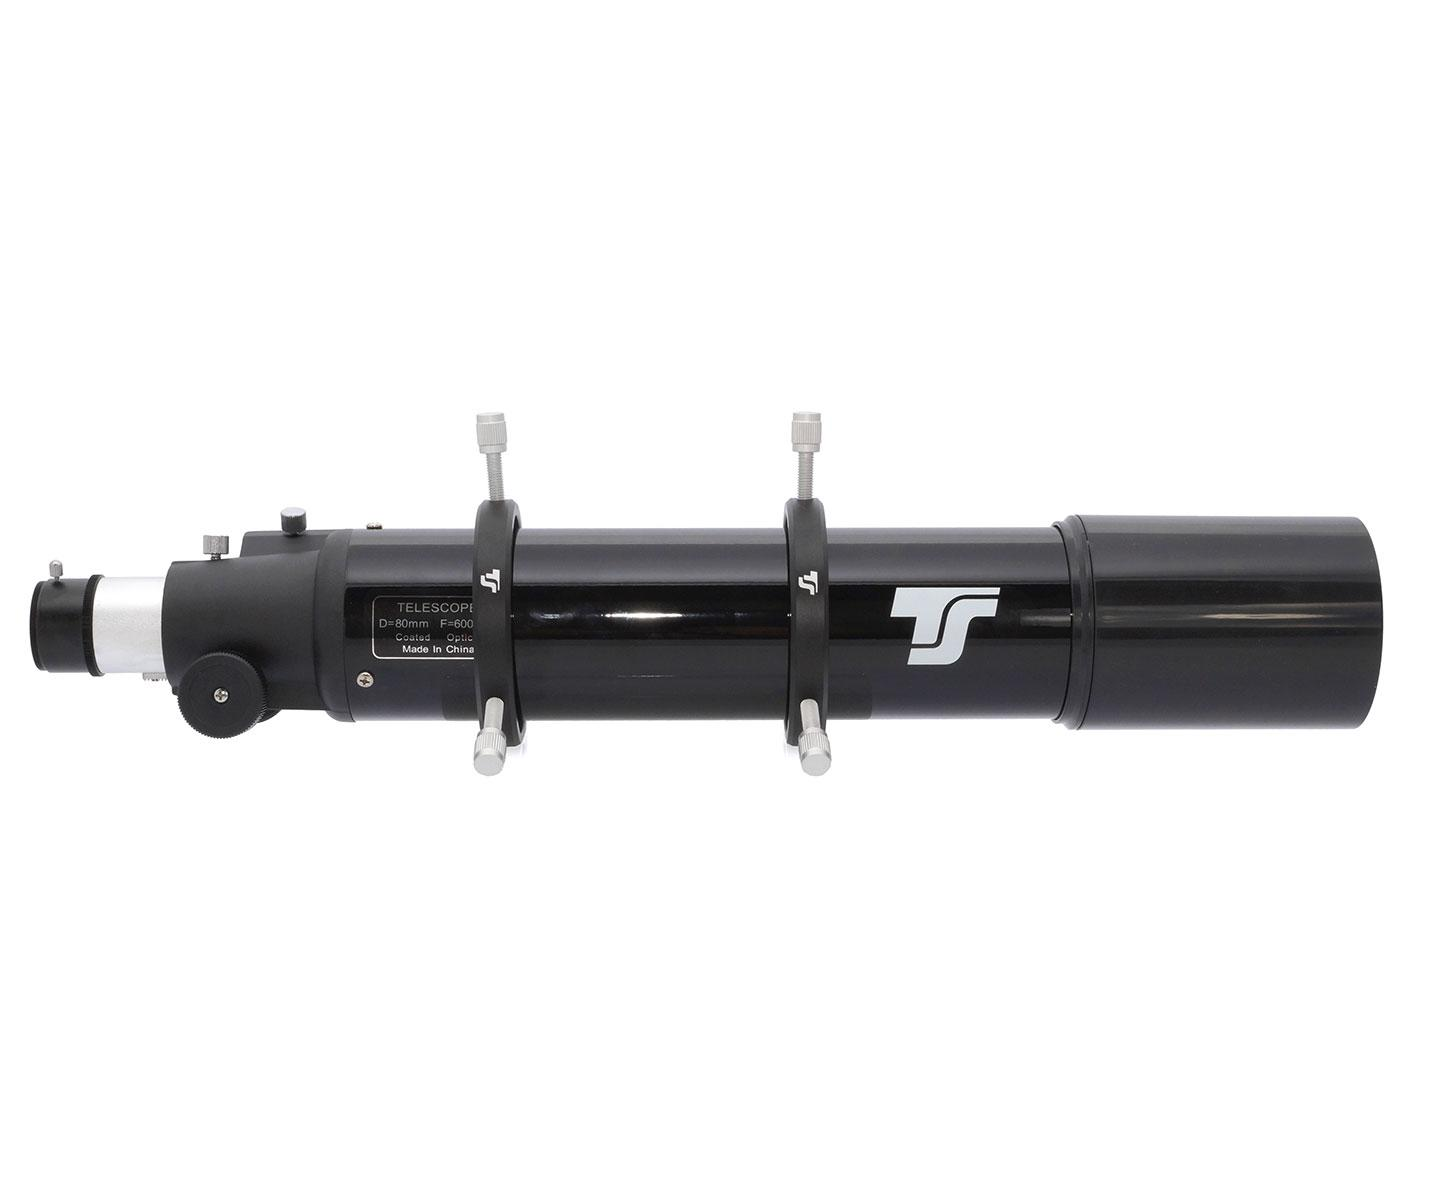 TS-Optics Guiding Scope 80/400 mm with adjustable tube rings [EN]